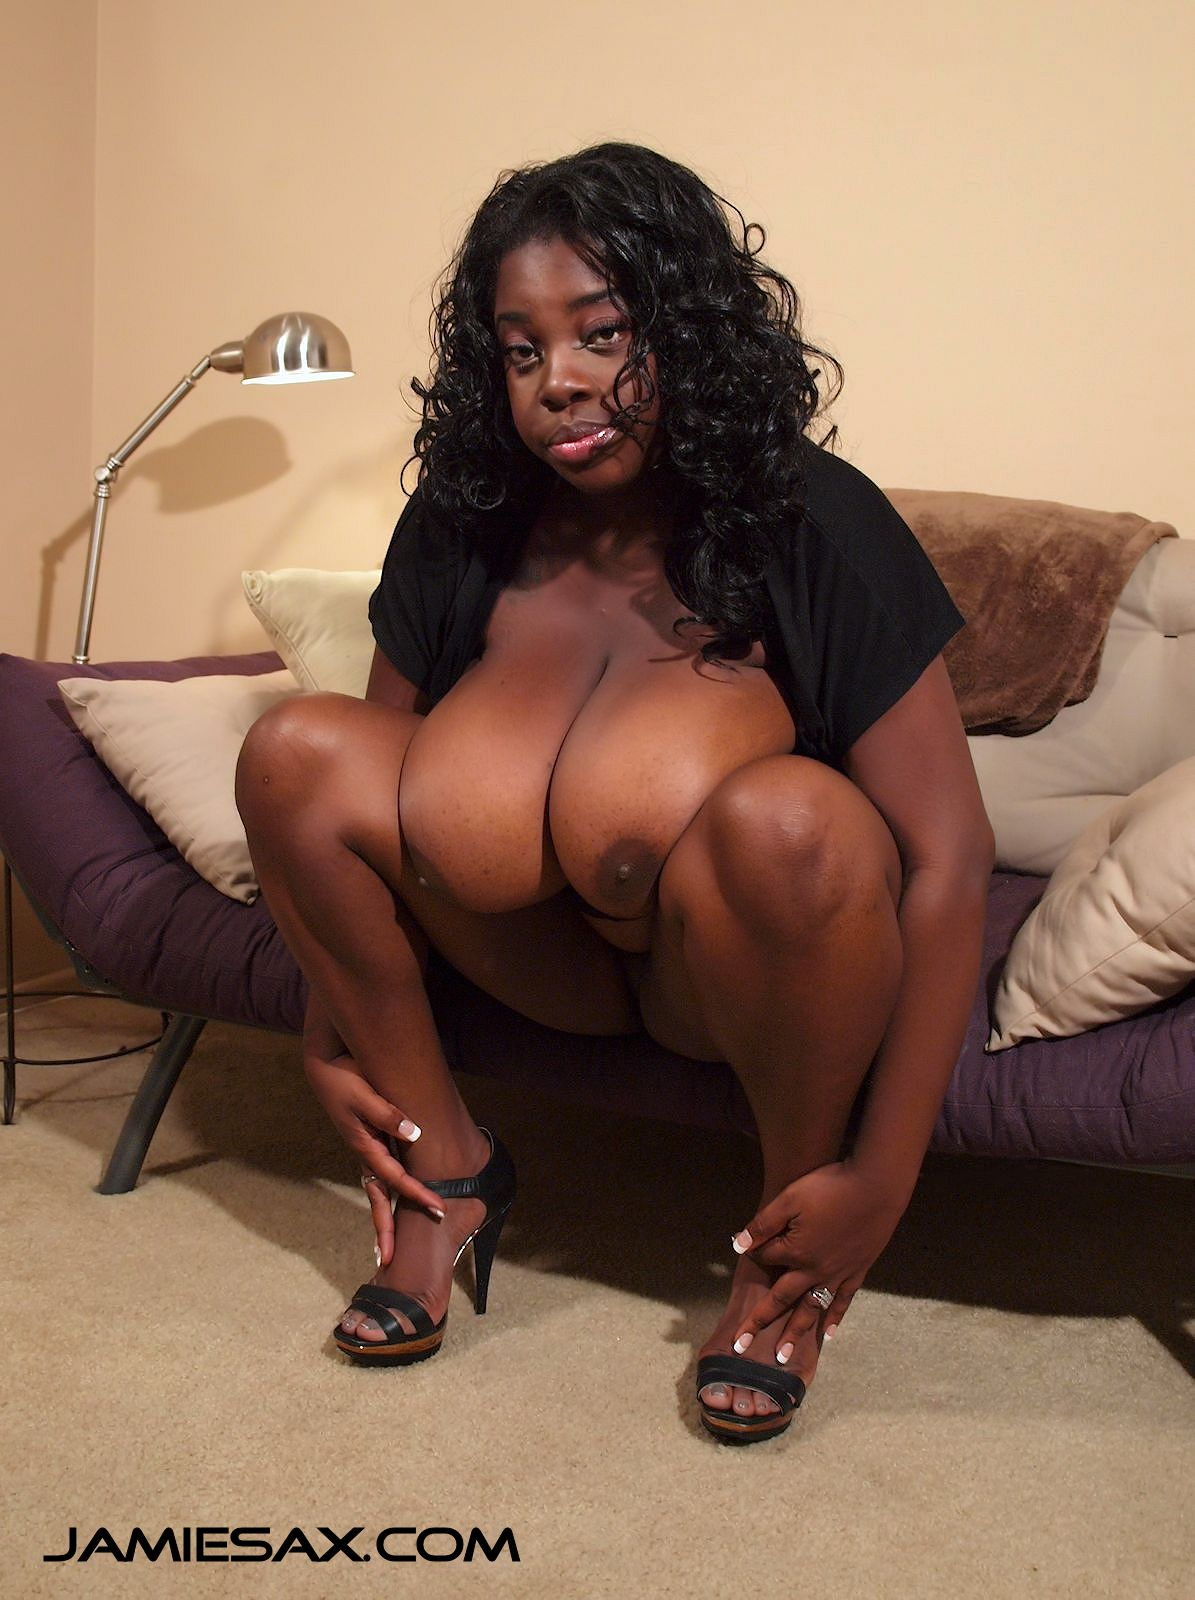 Big black tit milf, Jamie Sax spread her legs in high heels.